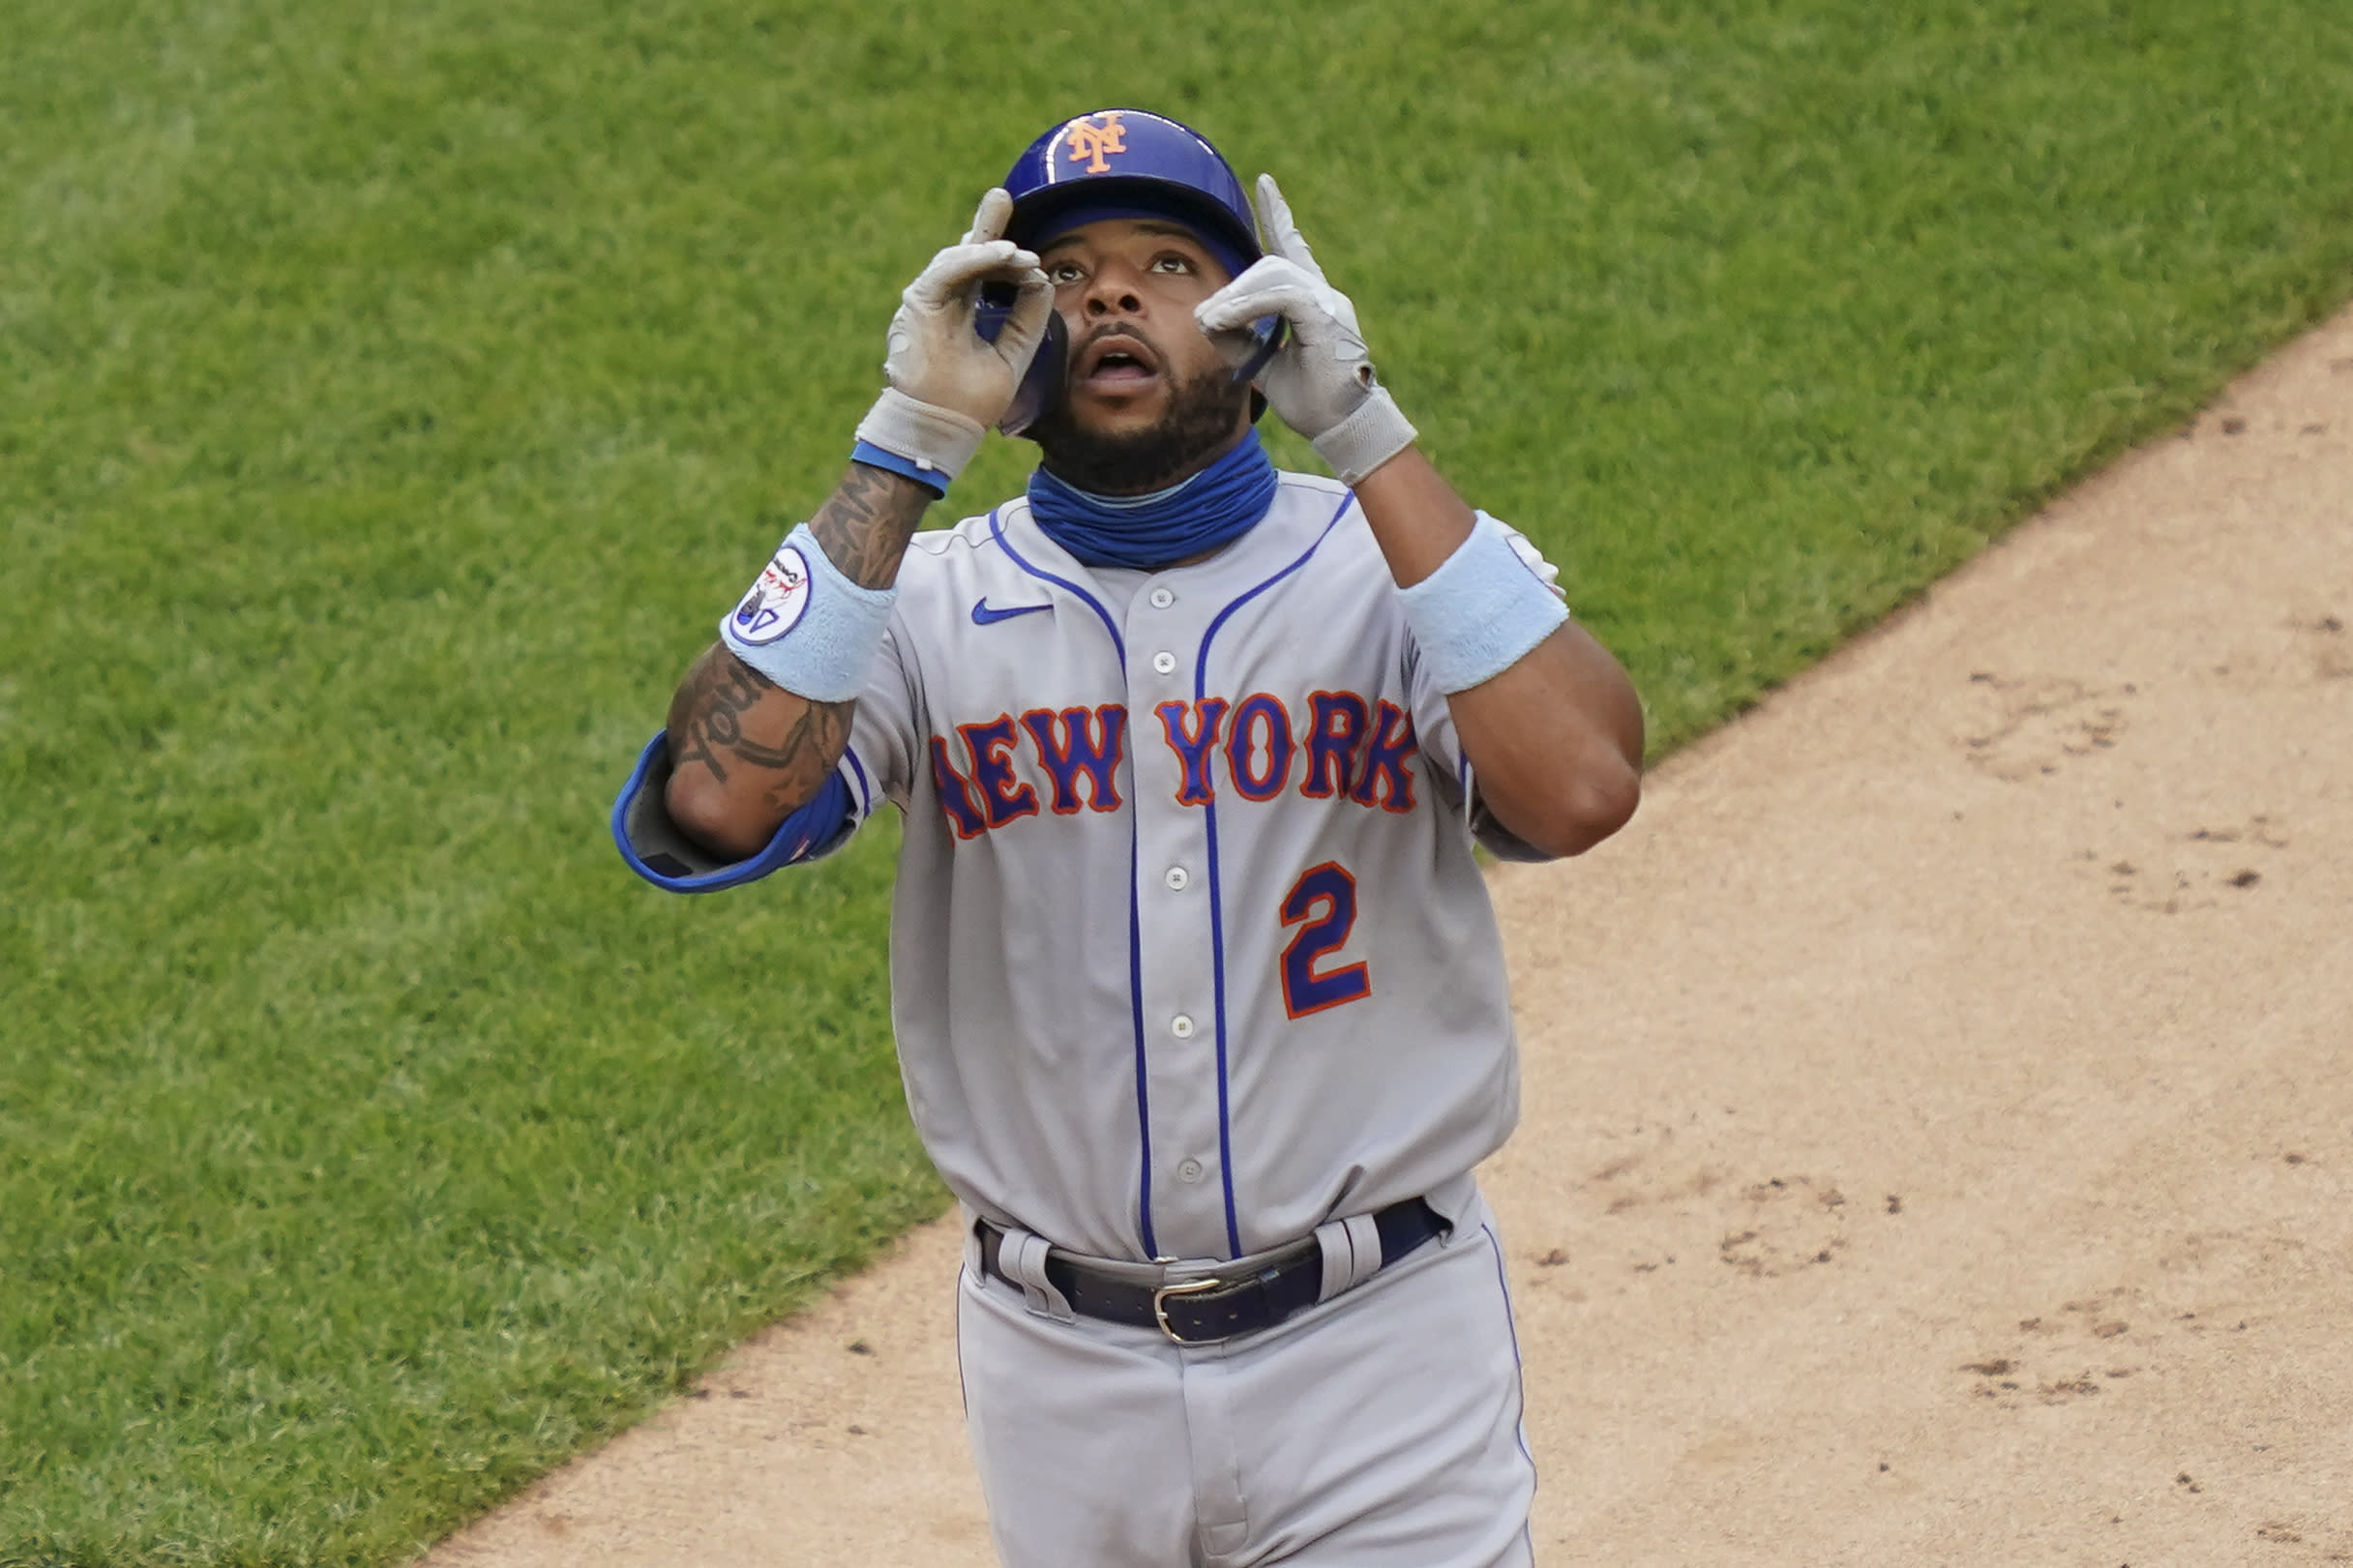 New York Mets' Dominic Smith celebrates after hitting a go-ahead solo home run off New York Yankees relief pitcher Chad Green in the sixth inning of the first baseball game of a doubleheader, Friday, Aug. 28, 2020, in New York. (AP Photo/John Minchillo)